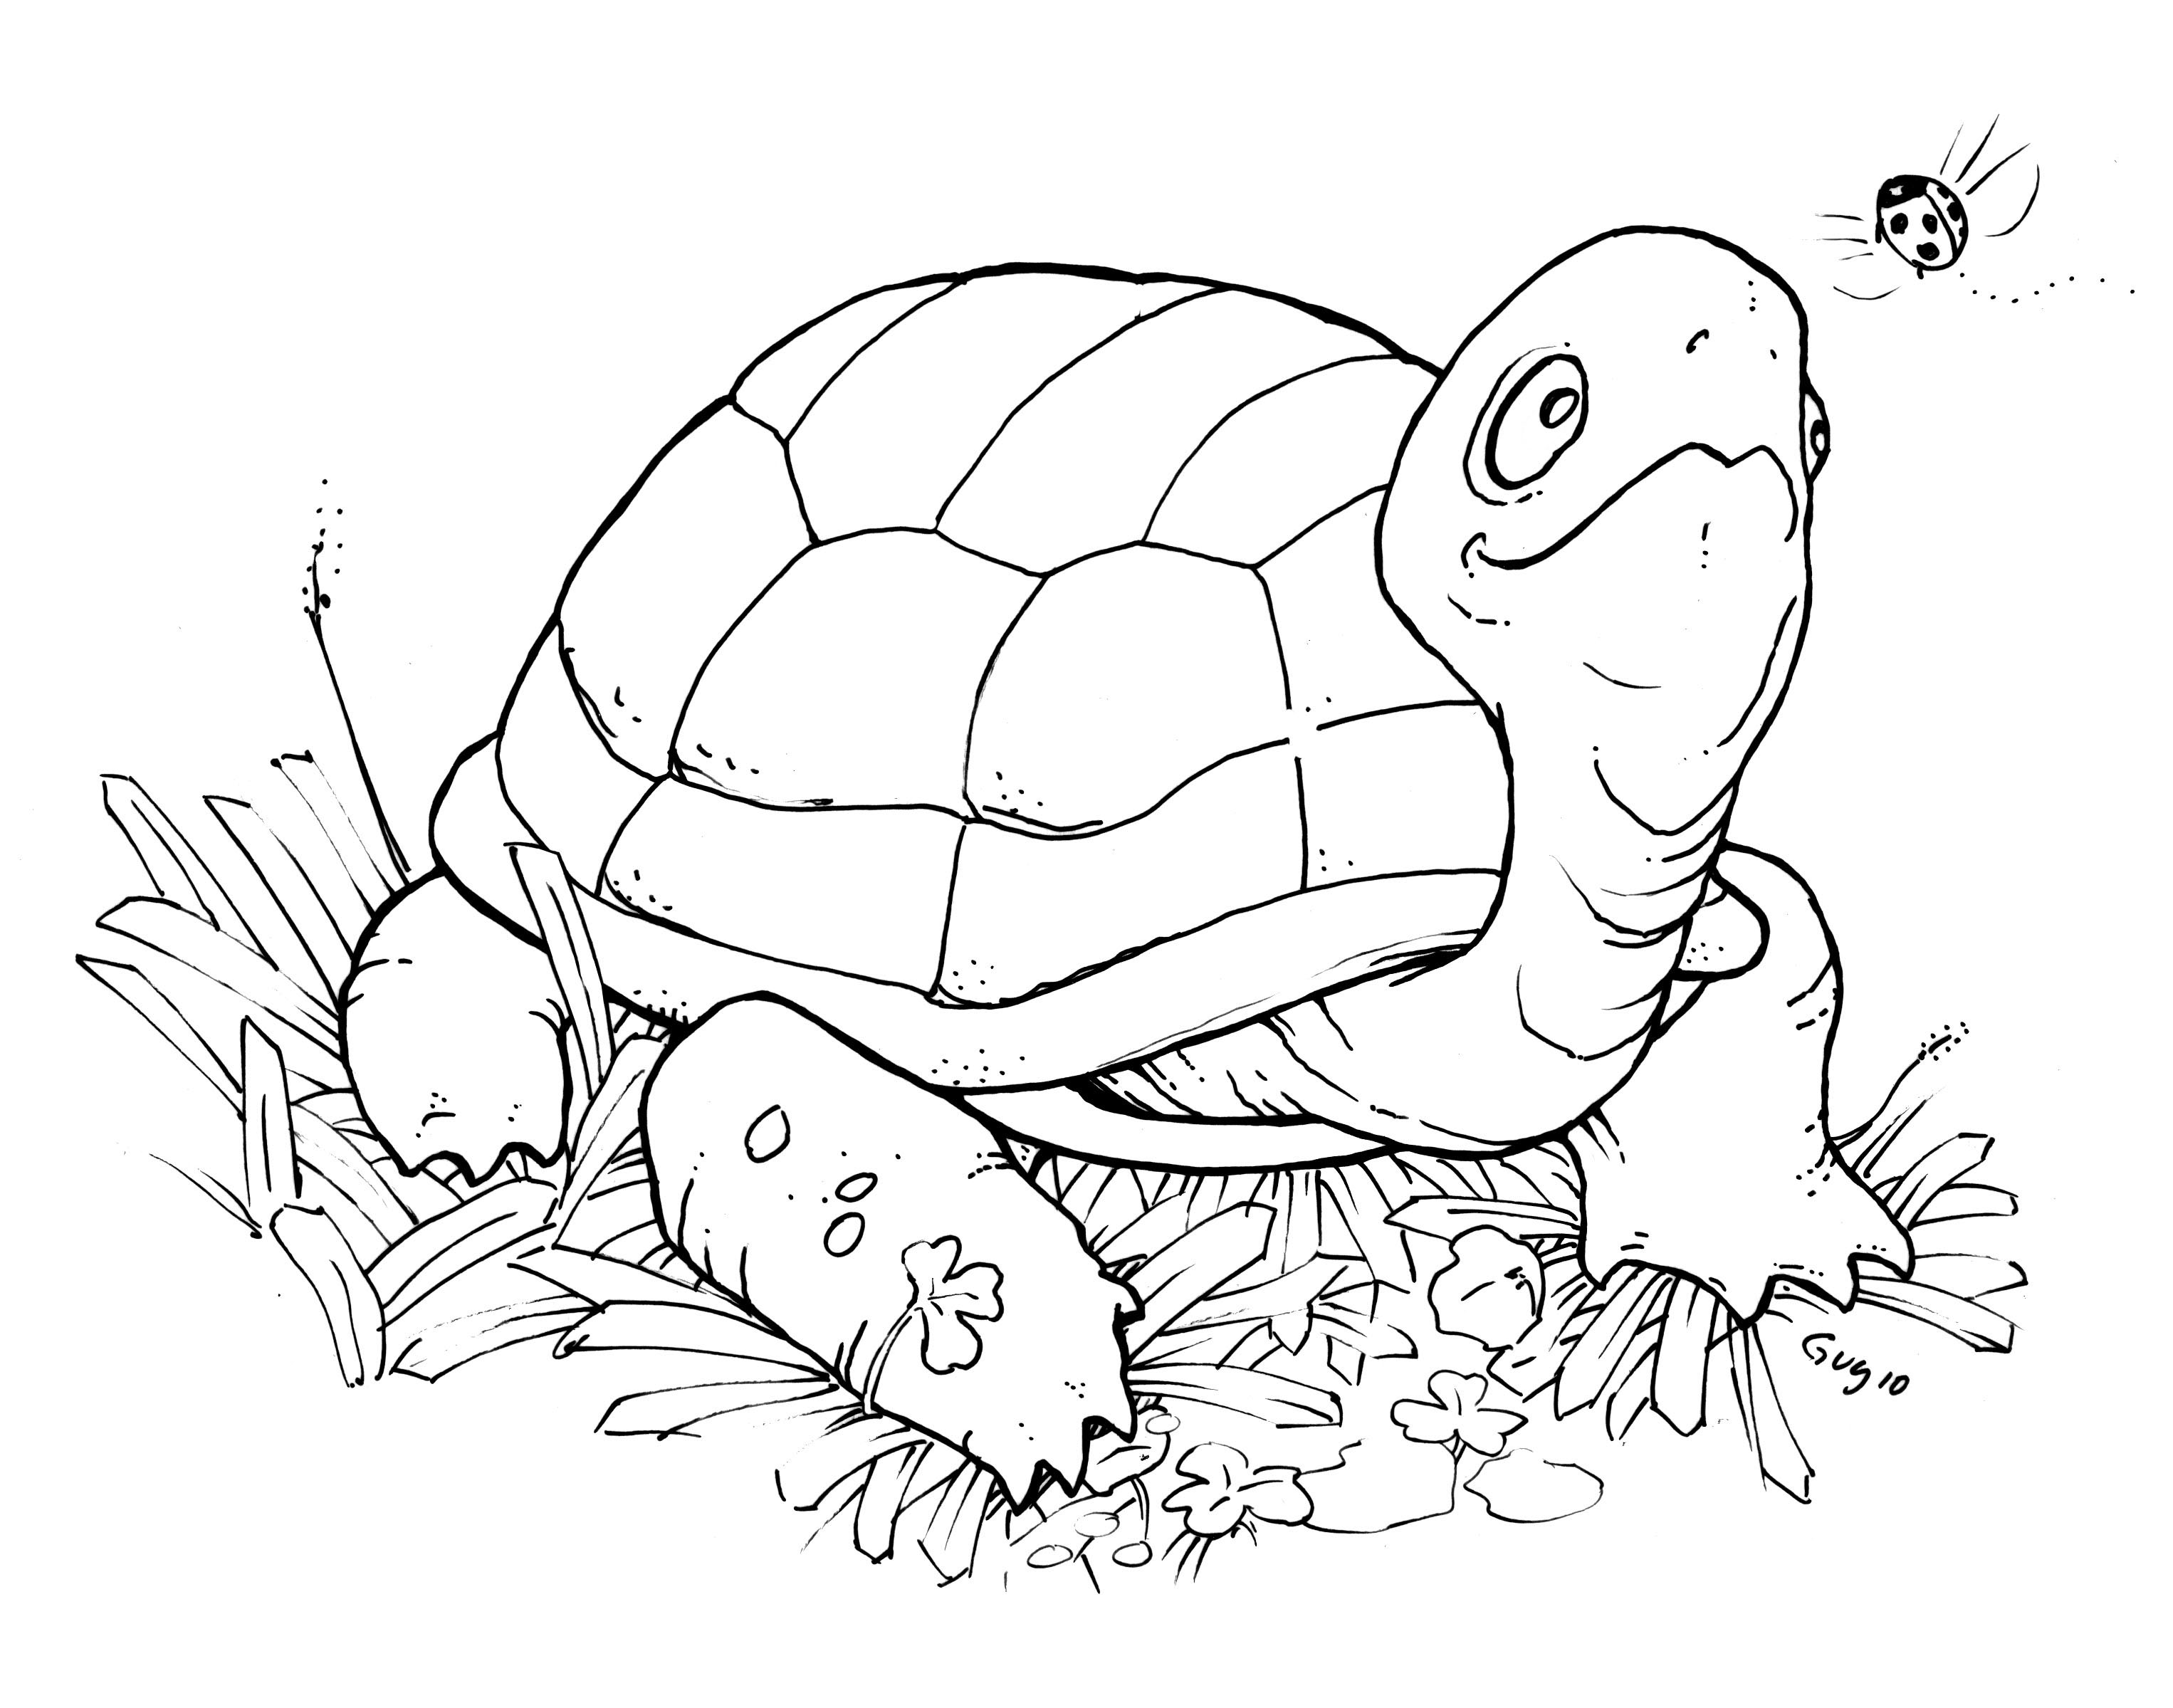 turtles coloring pages - photo#42